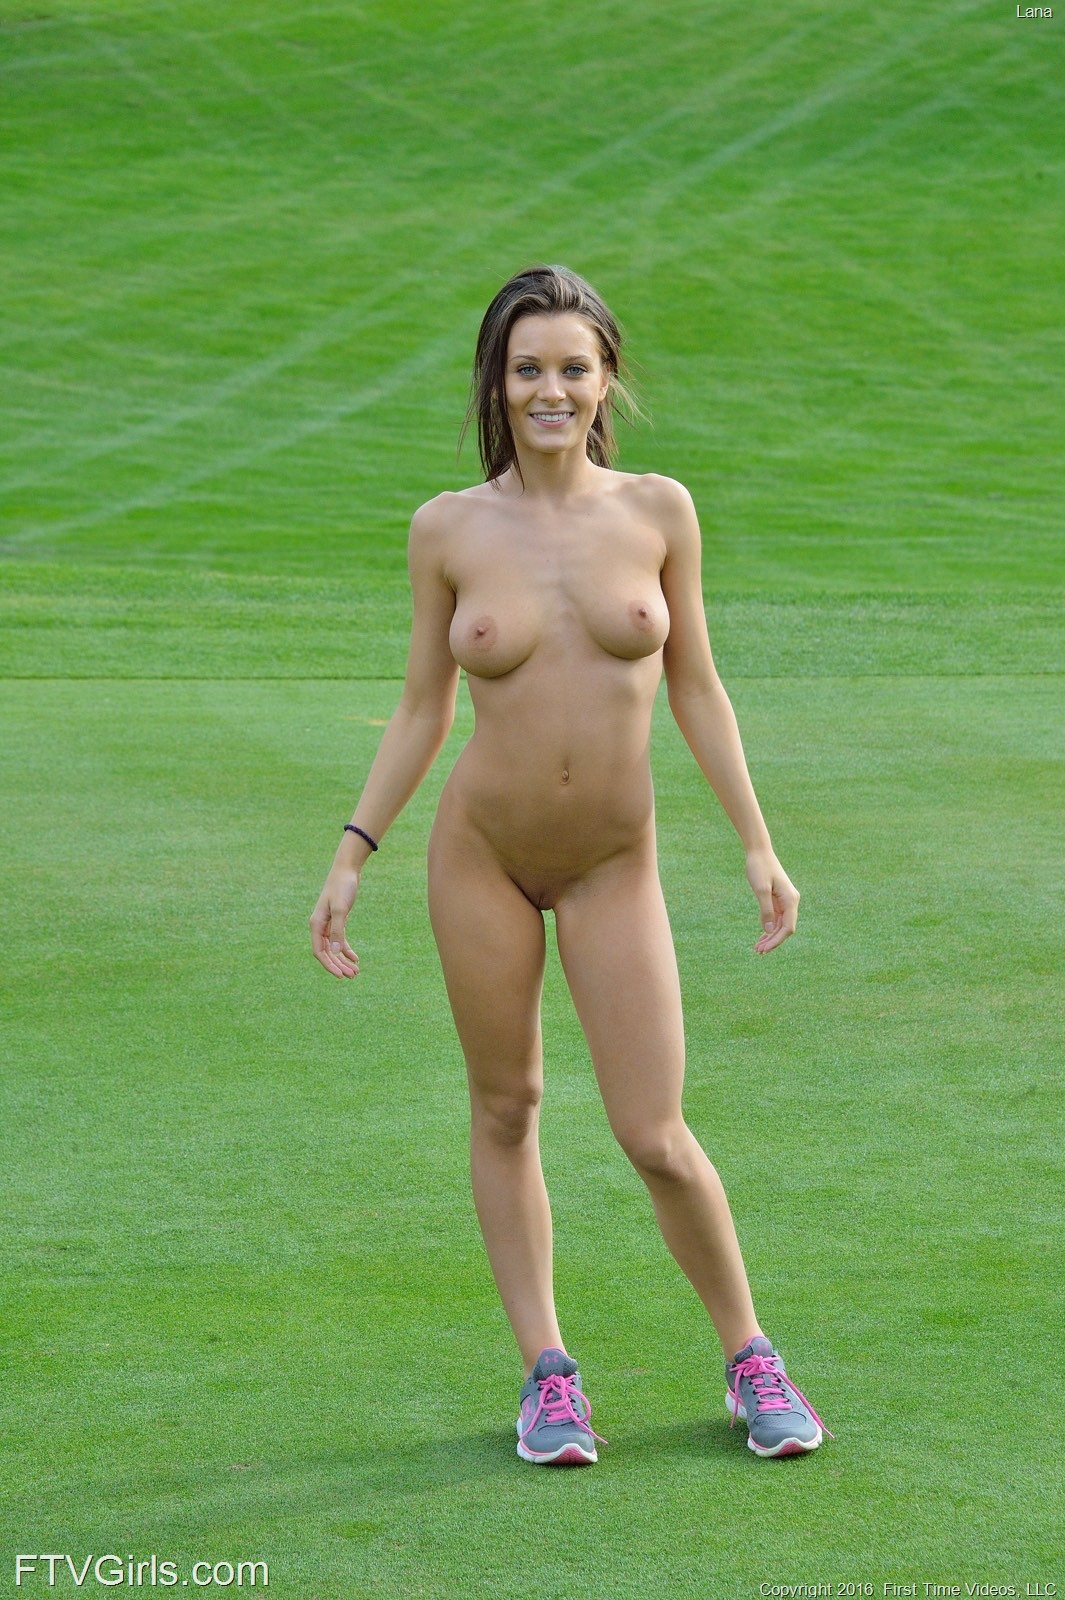 Lana In Sporty Green Girl By Ftv-Girls 15 Nude Photos Nude Galleries-6109